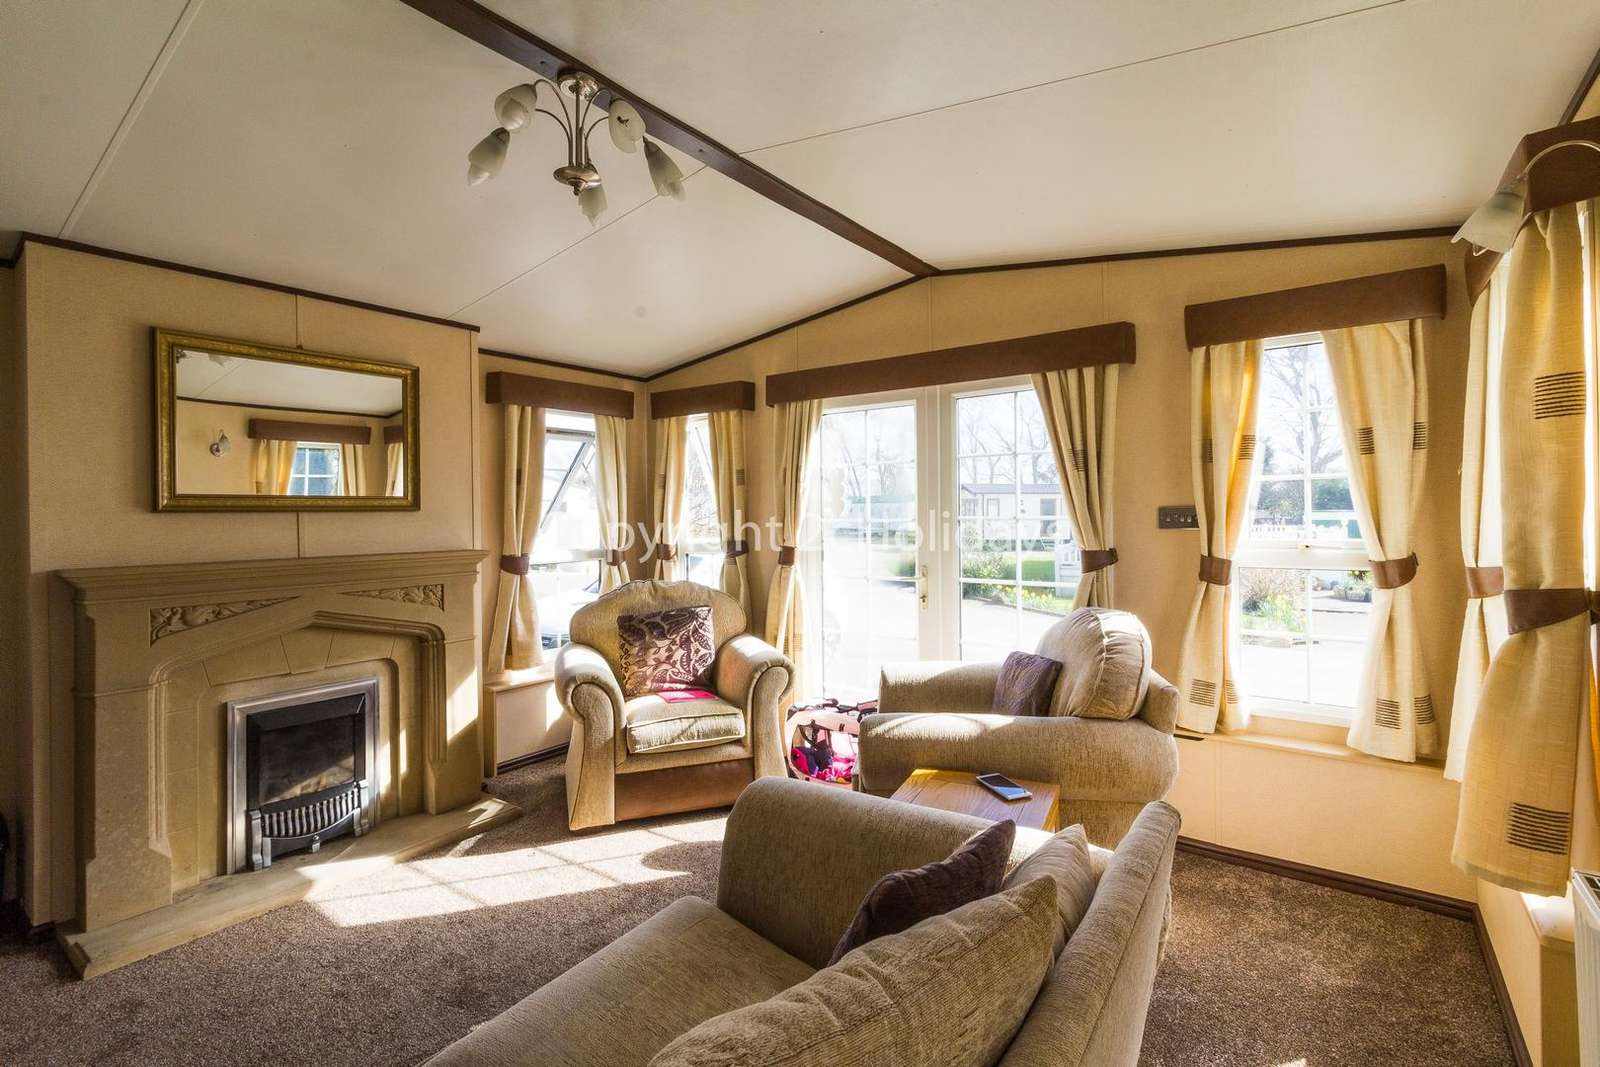 Relax in this cosy lounge with family or friends!